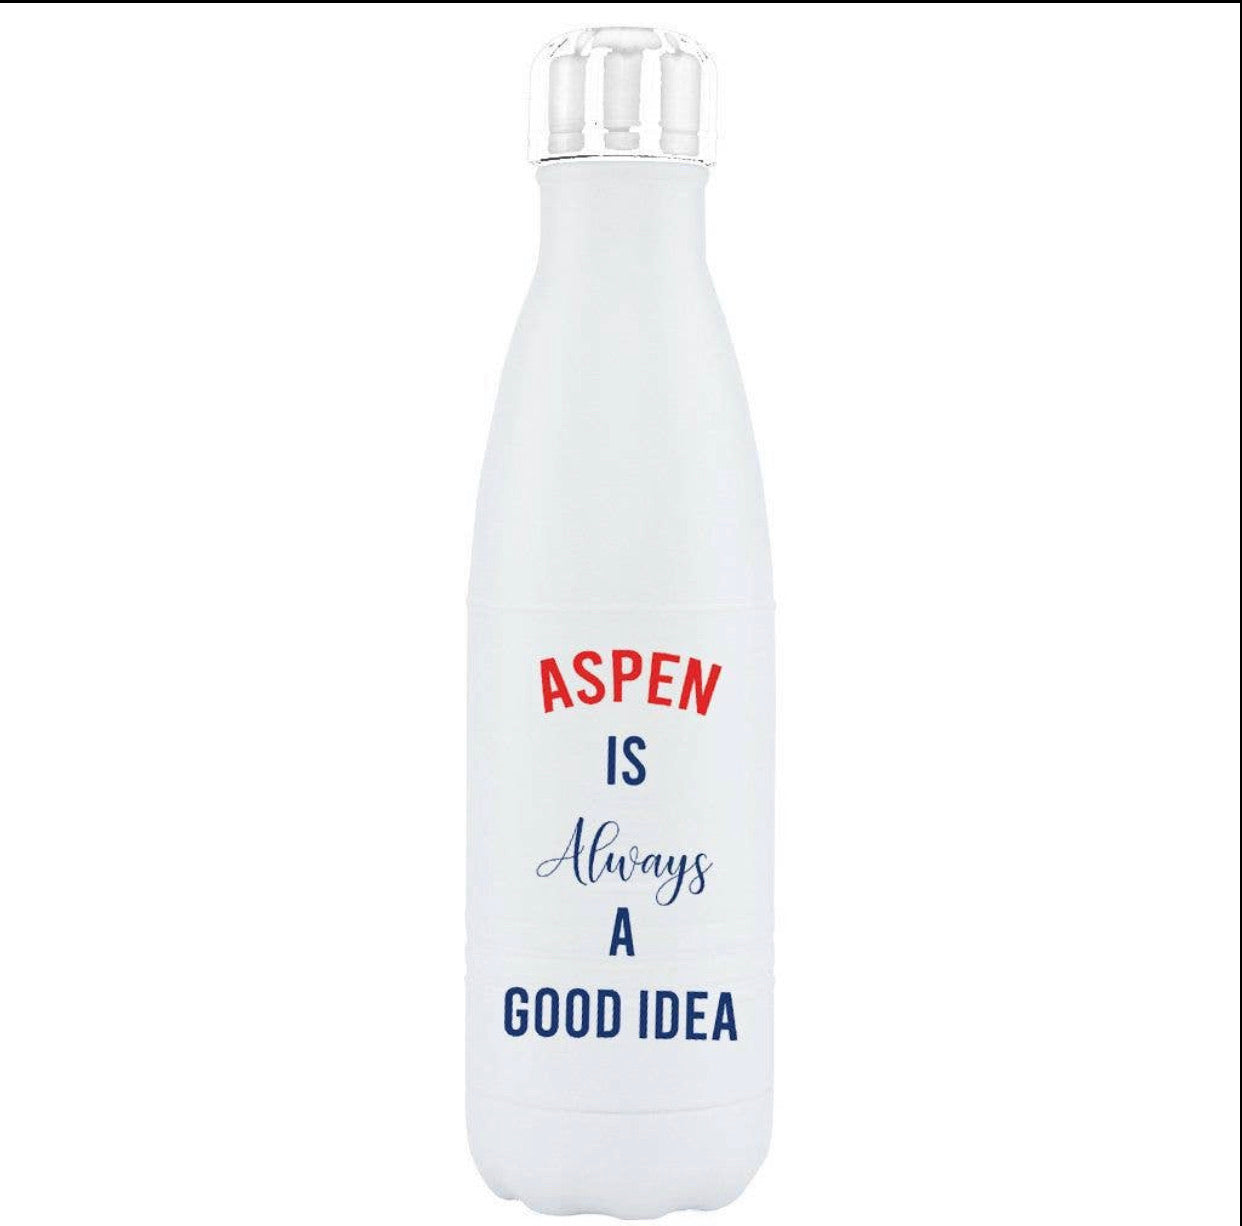 Aspen Is Always a Good Idea.